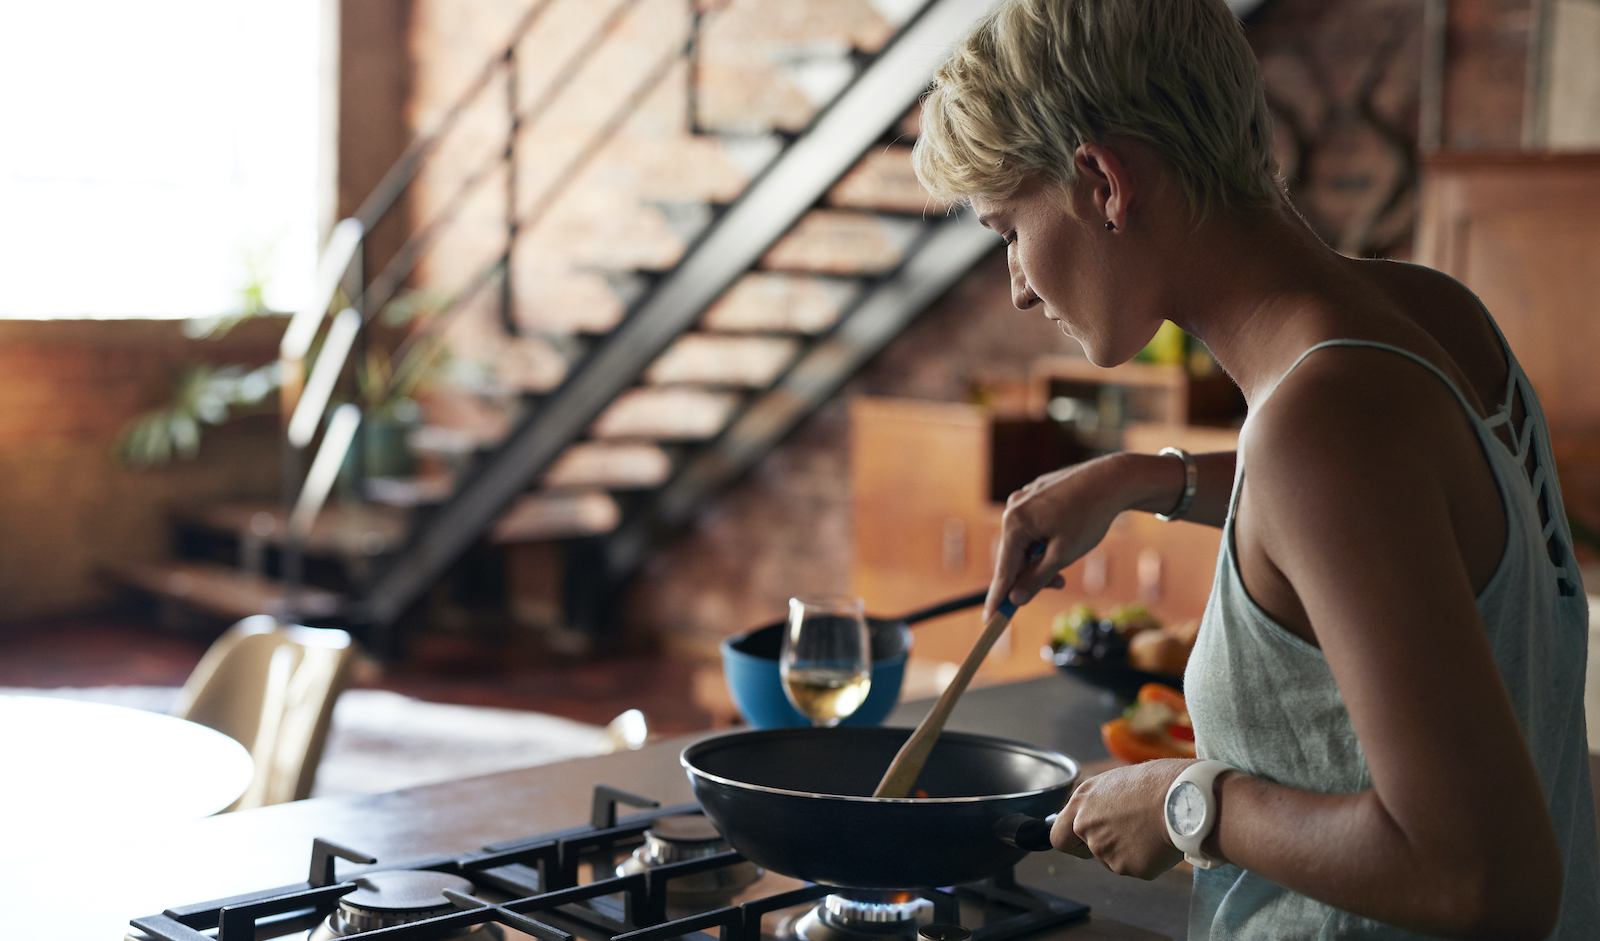 Woman cooking on gas stove.